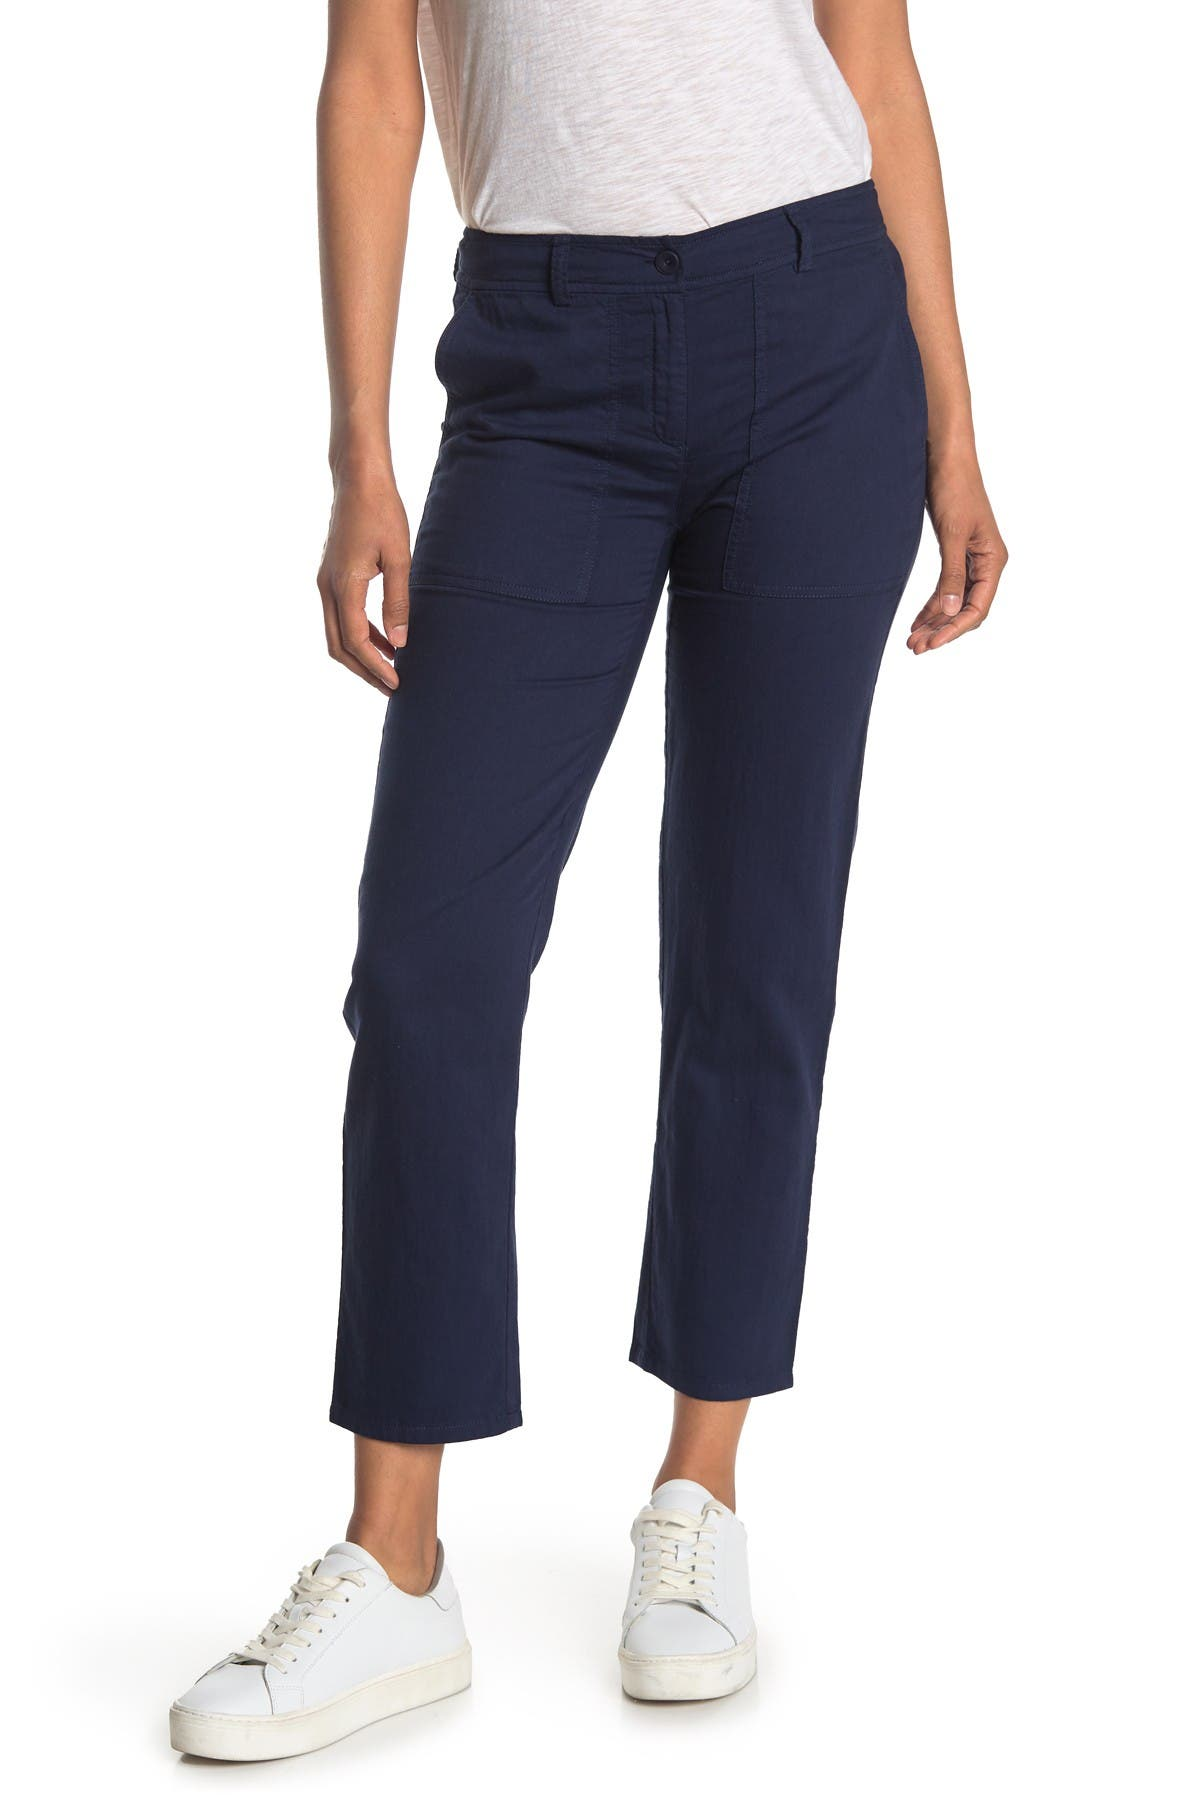 Image of Eileen Fisher Slouchy Ankle Pants